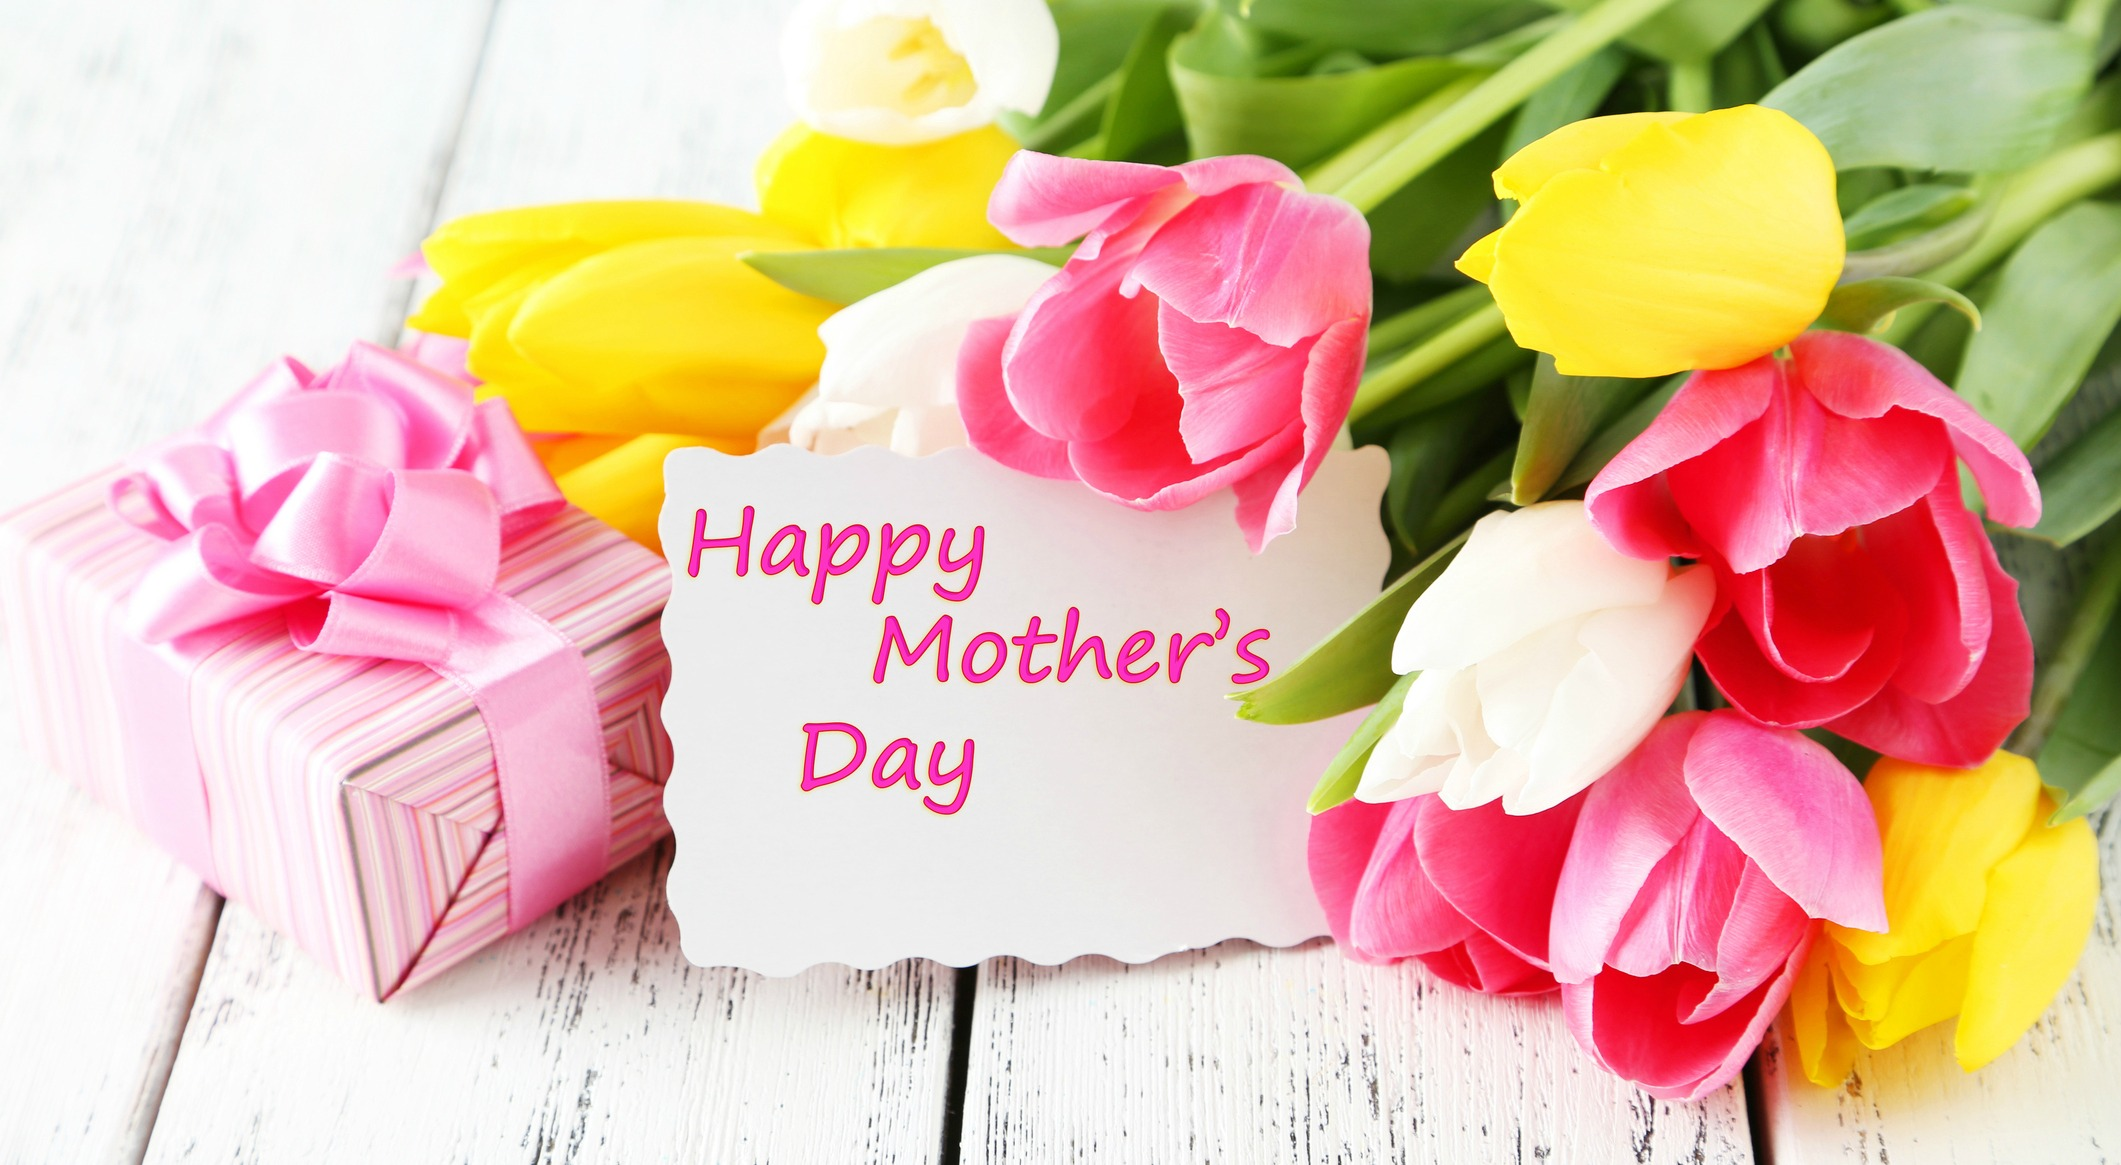 11 Fun Facts For Mothers Day Soderbergs Floral And Gift